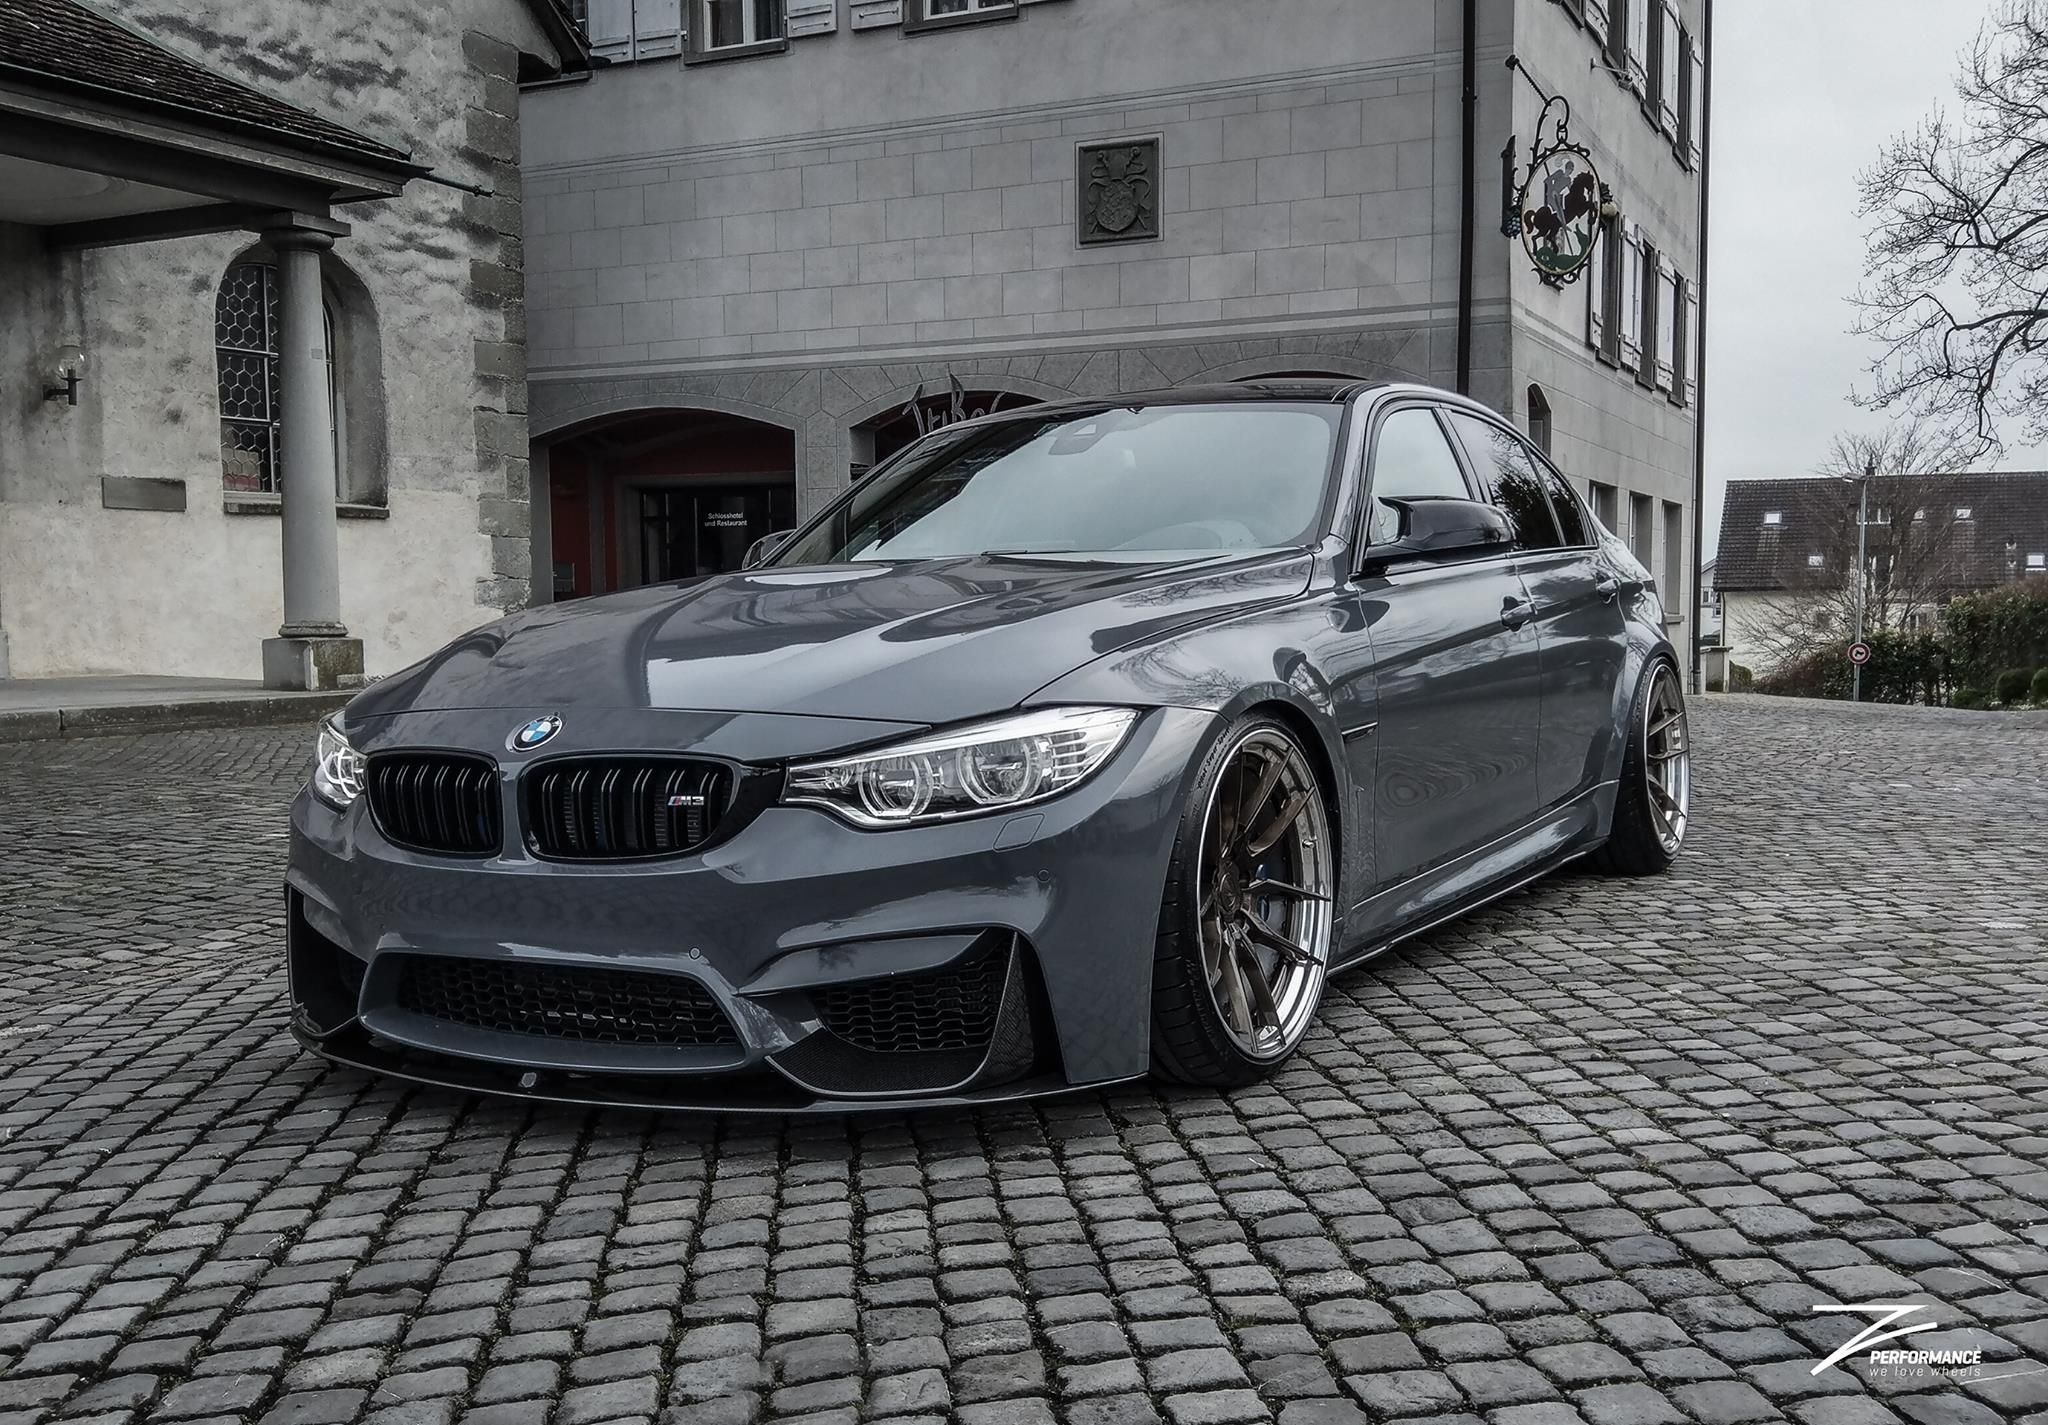 bmw f80 m3 sedan mineralgrey zperformance xdrive. Black Bedroom Furniture Sets. Home Design Ideas